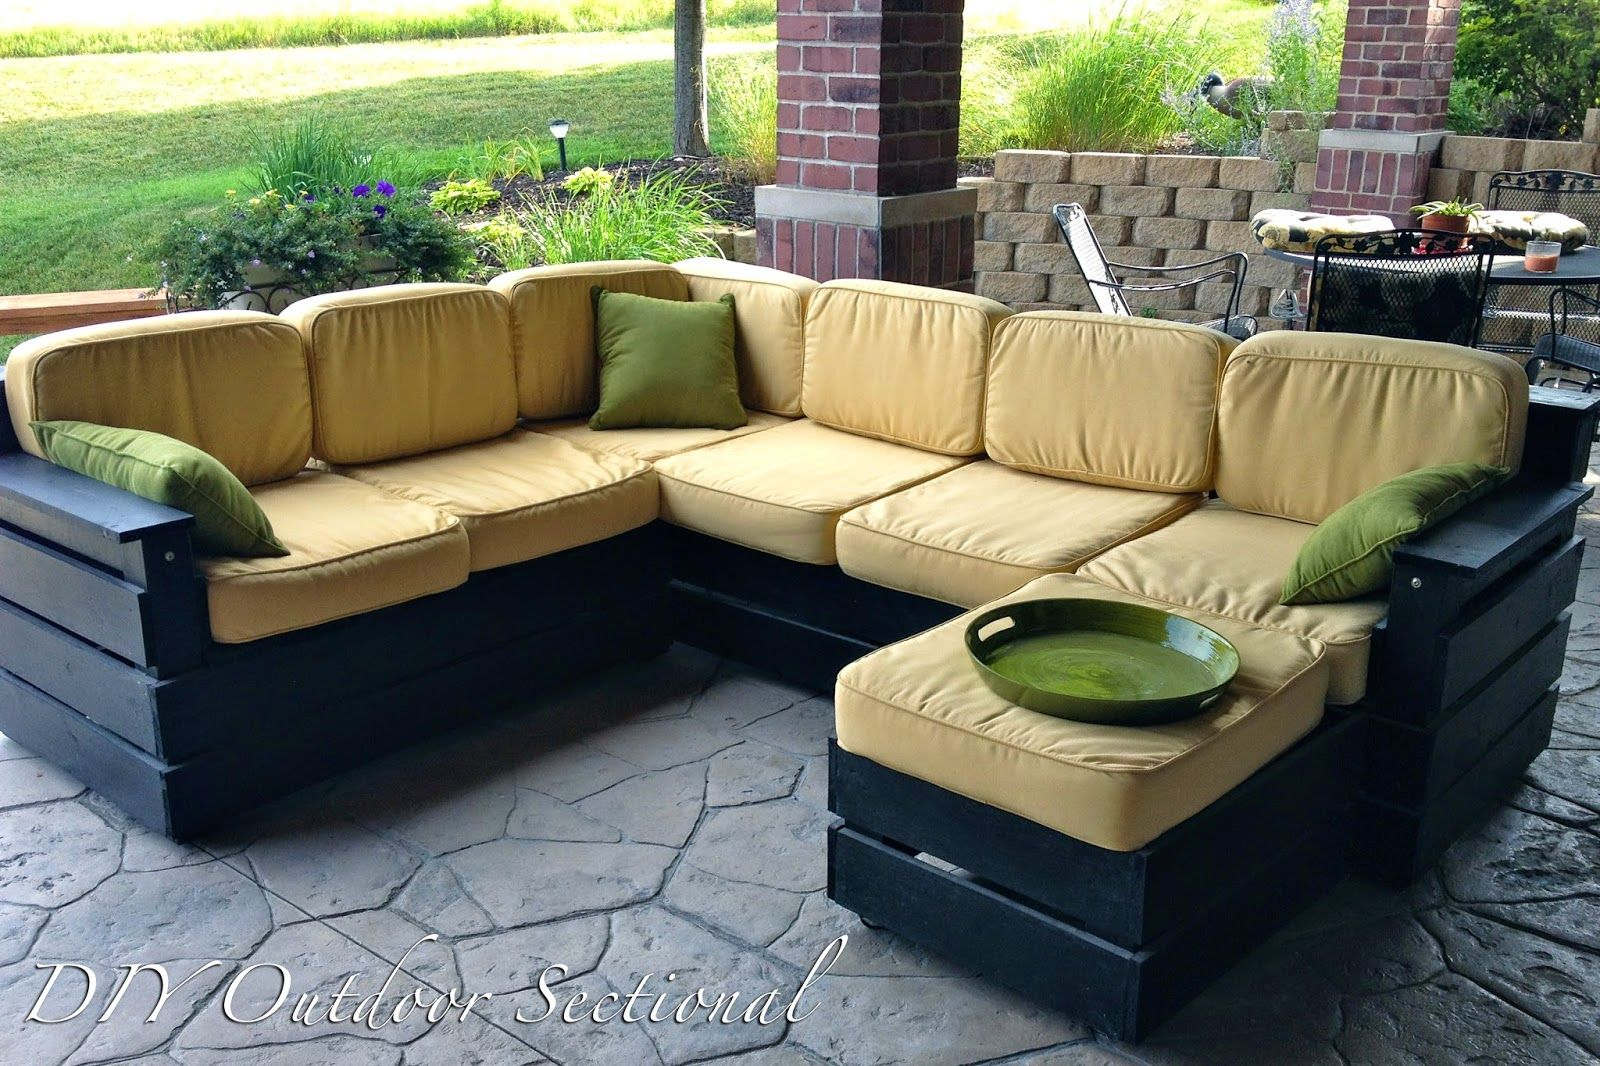 Diy sofa plans build your own couch build your own couch with - Diy Outdoor Sectional Build It Yourself Out Of Regular Wood From A Home Improvement Store